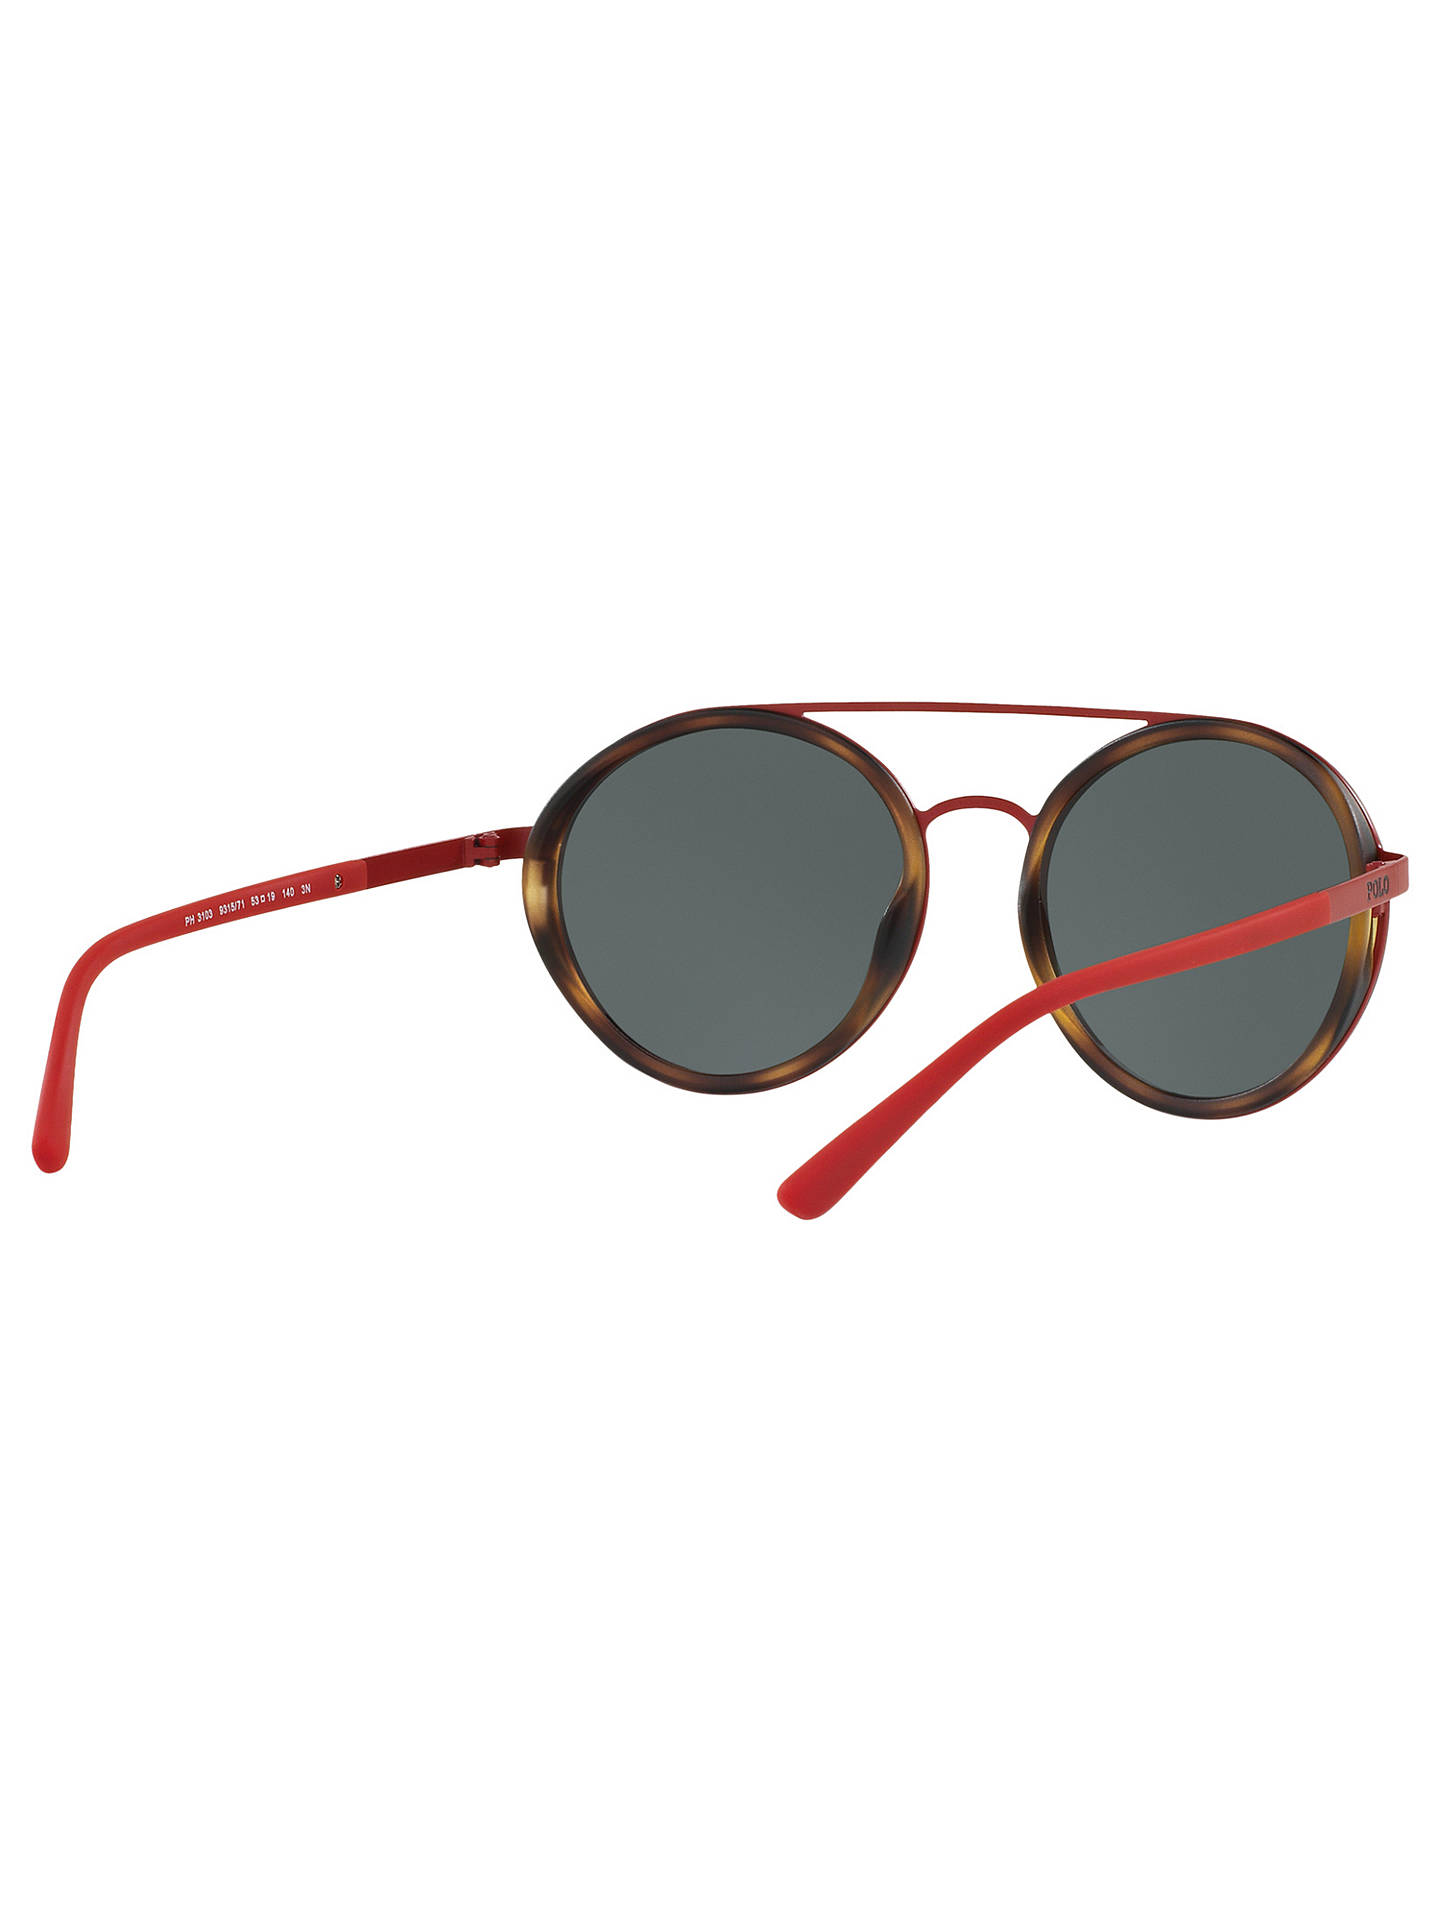 BuyPolo Ralph Lauren PH3103 Round Sunglasses, Red Online at johnlewis.com